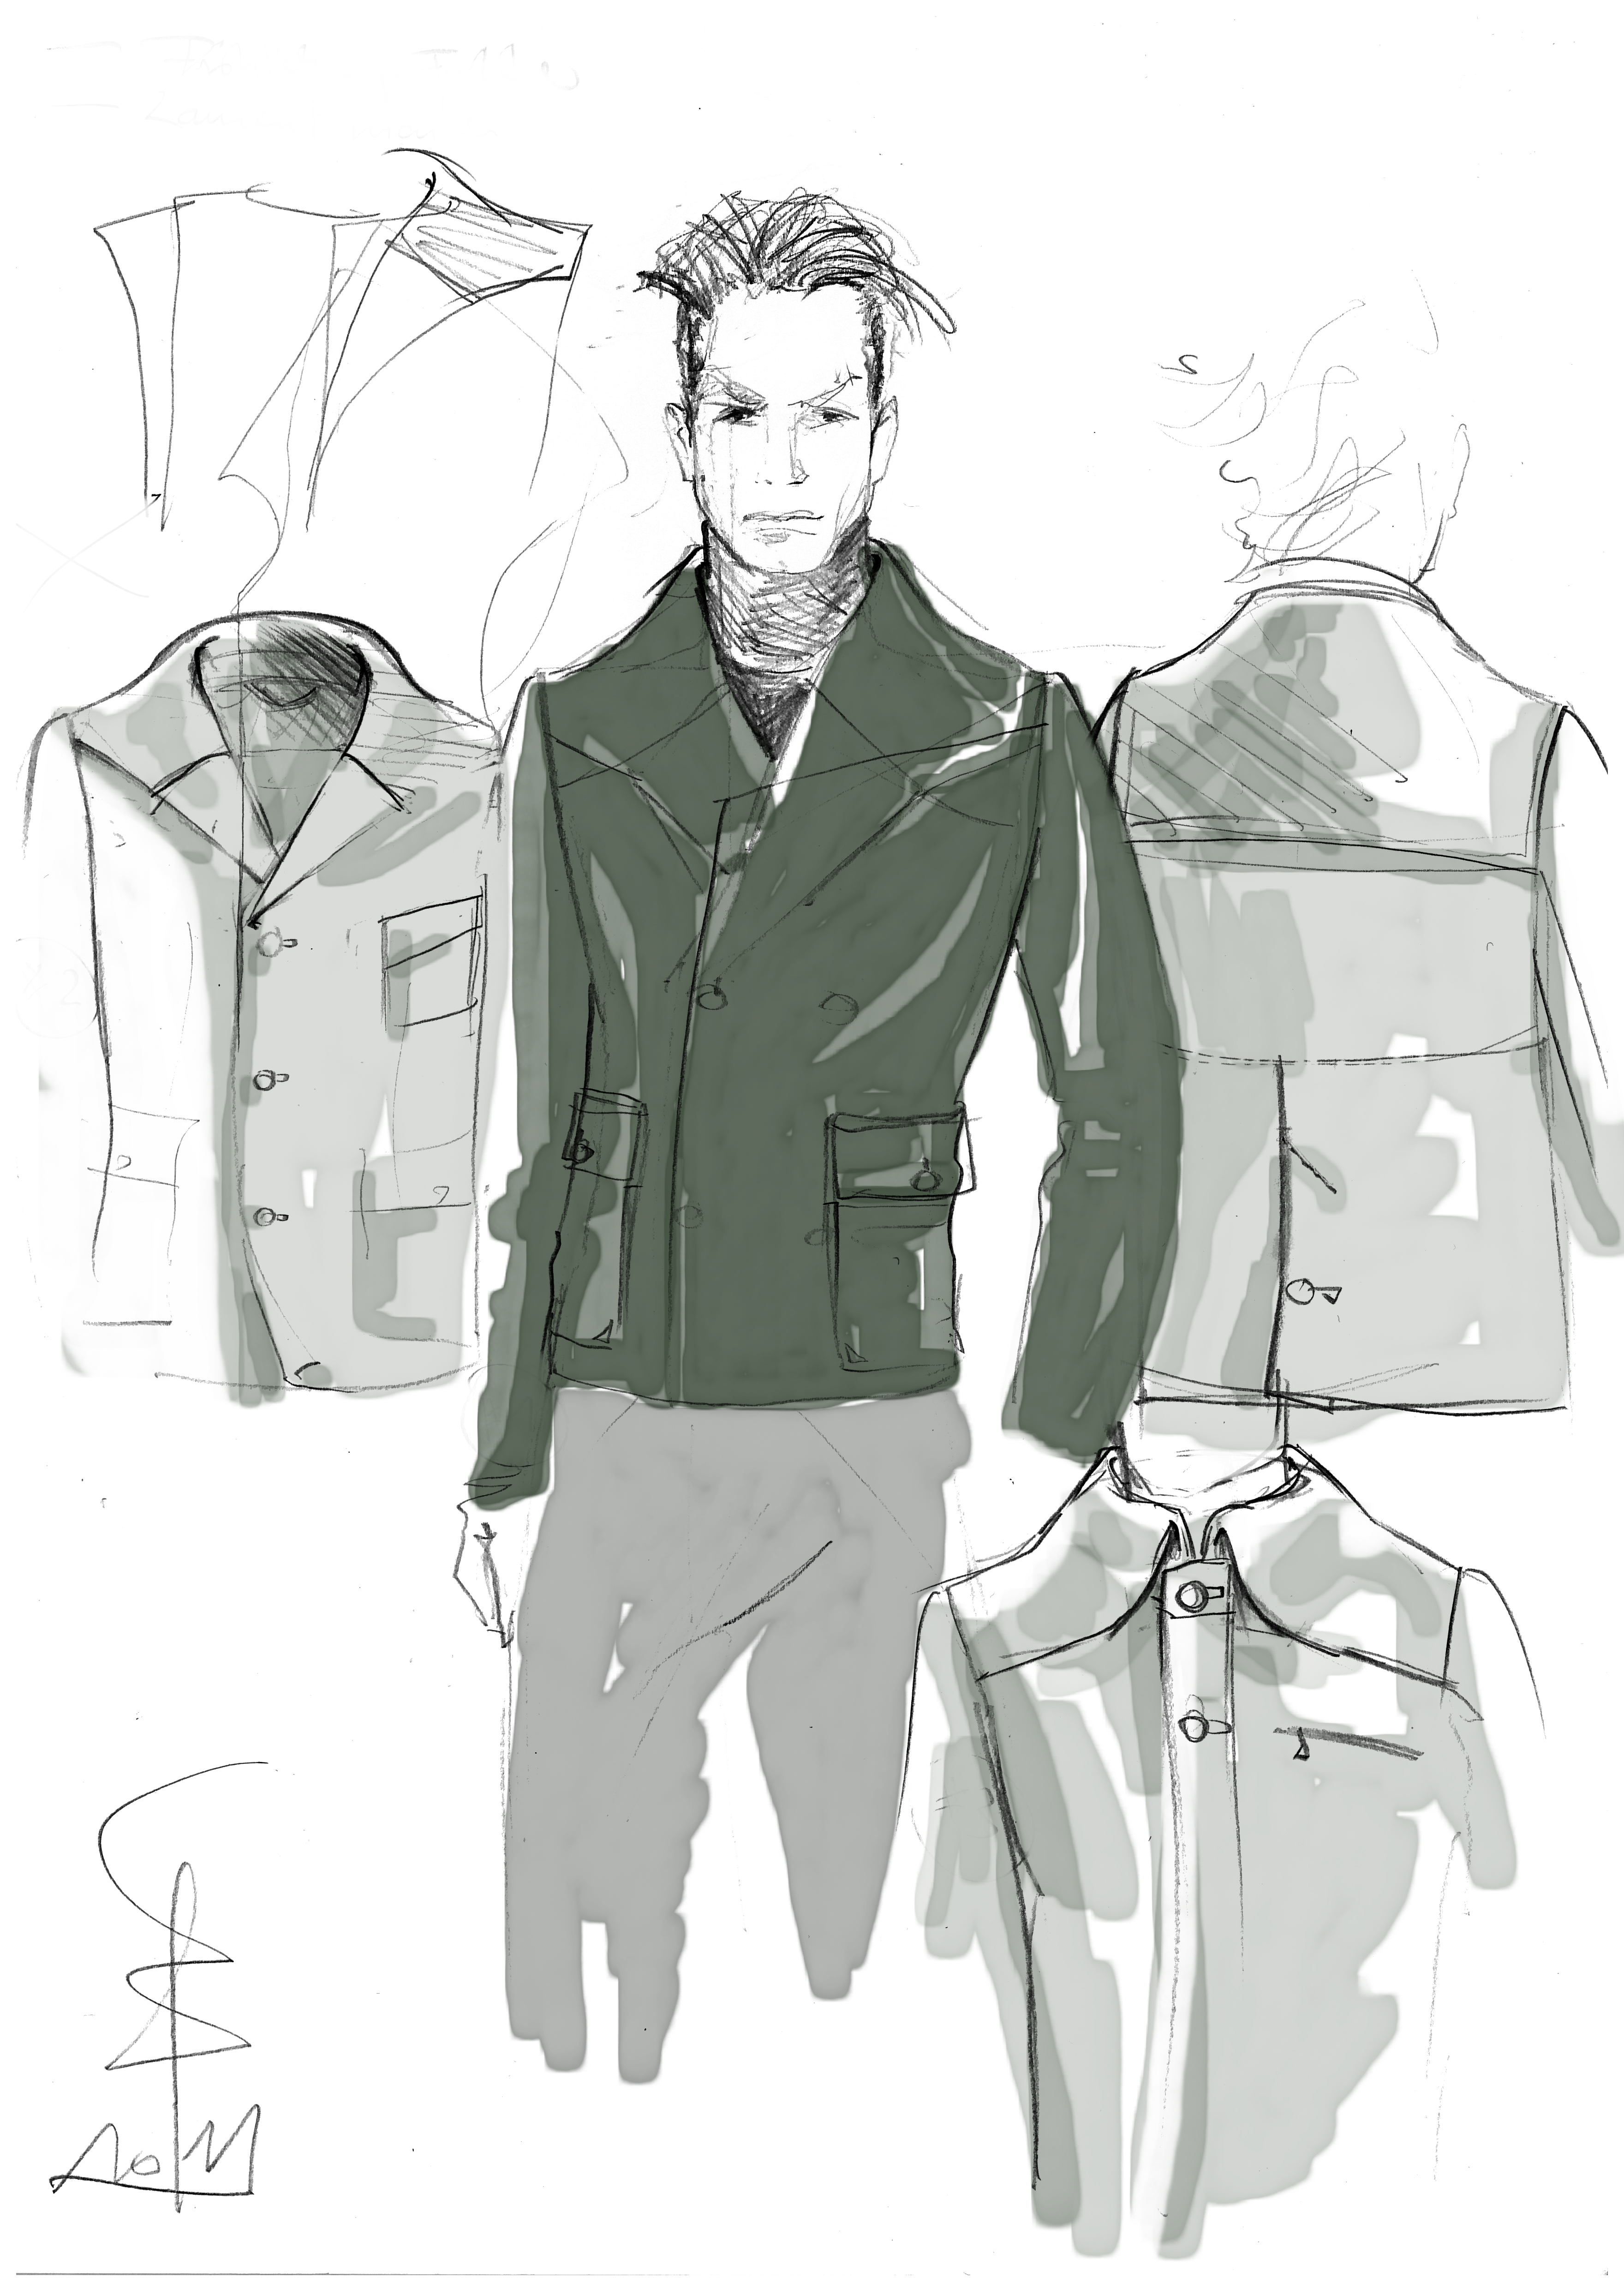 Jacket EIFEL | pencil on paper, digitally colored ©2011